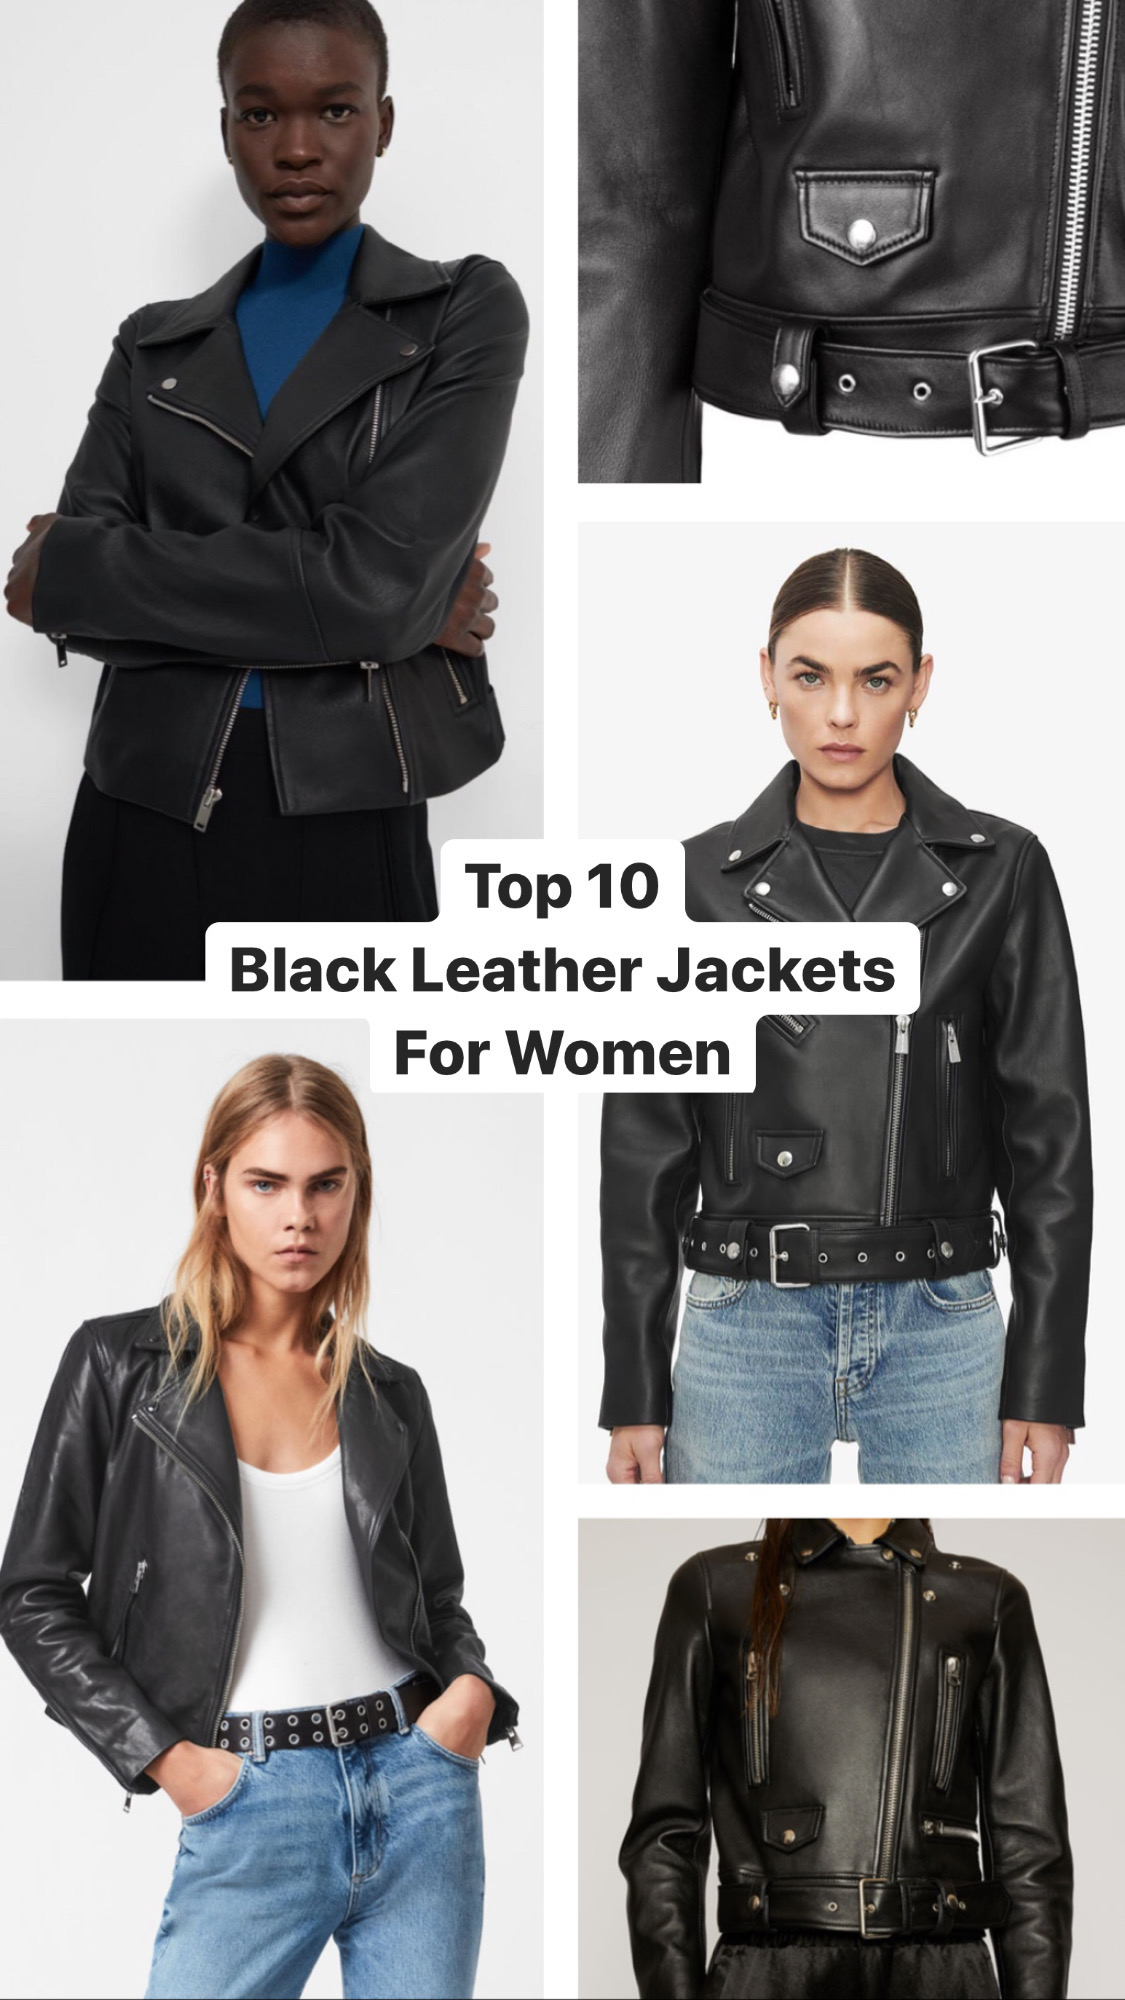 Parisian style Top 10 Black Leather Jackets For Women